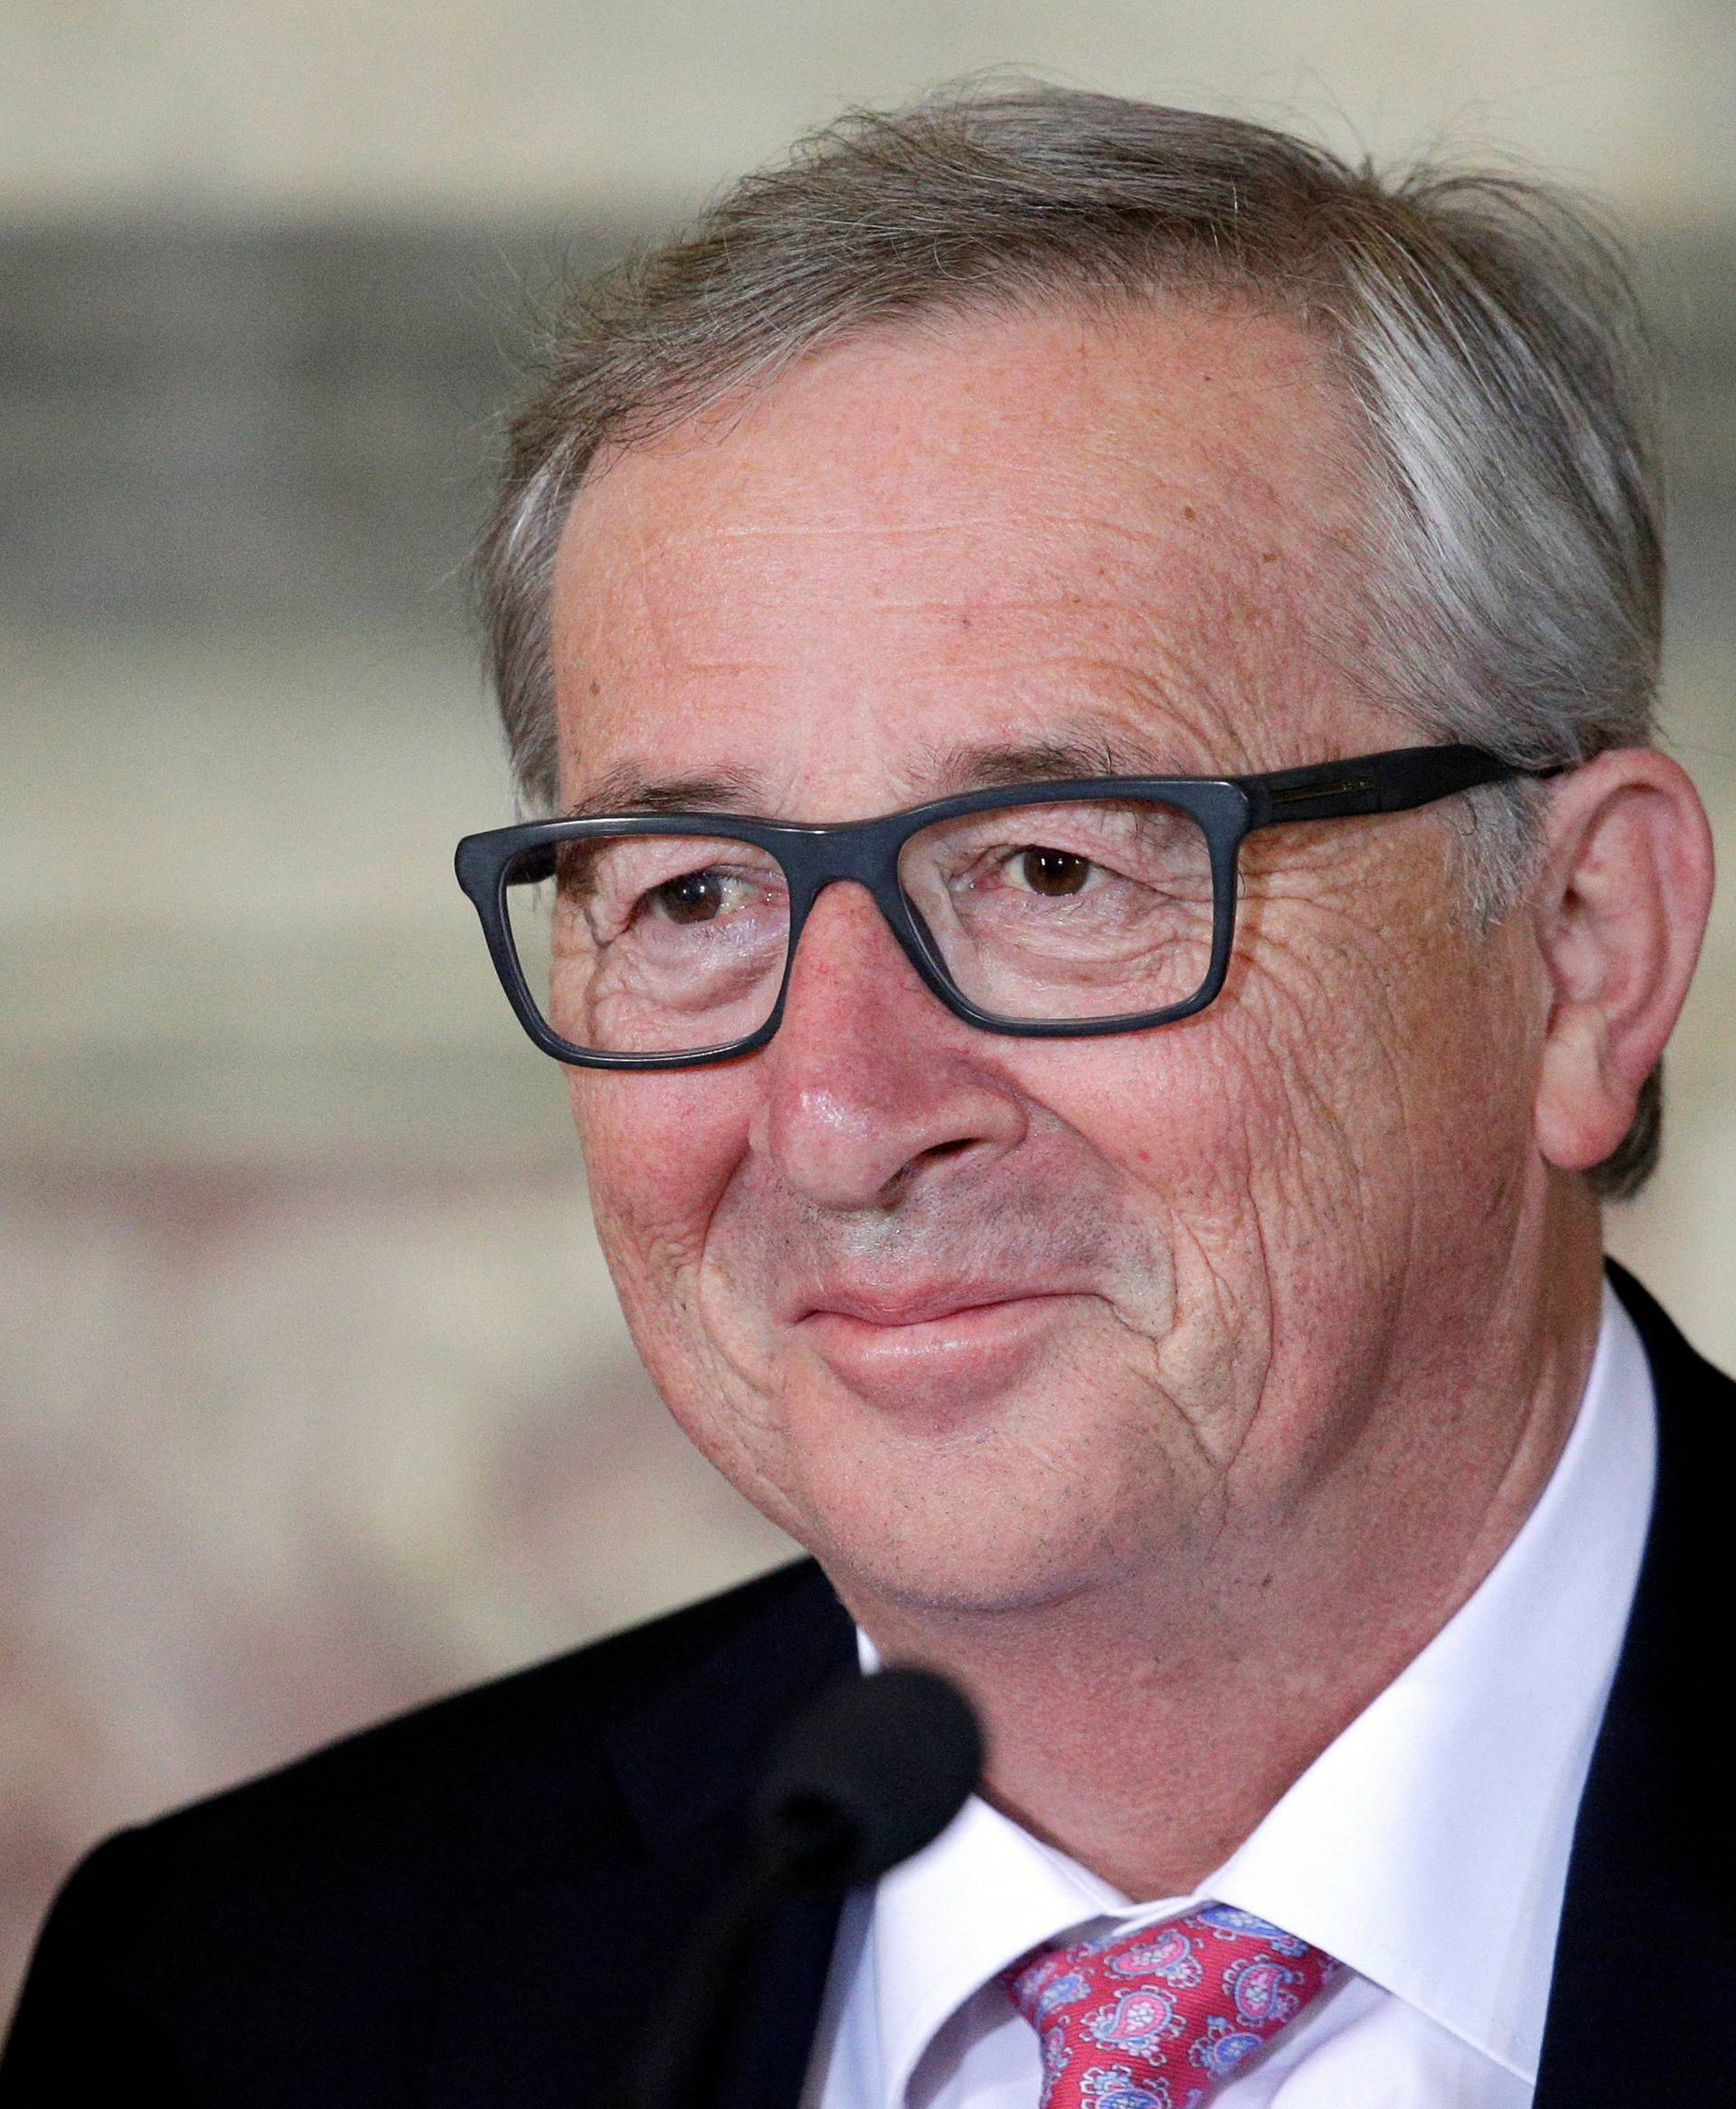 European Commission President Juncker looks on during a meeting at the Capitol Hill in Rome